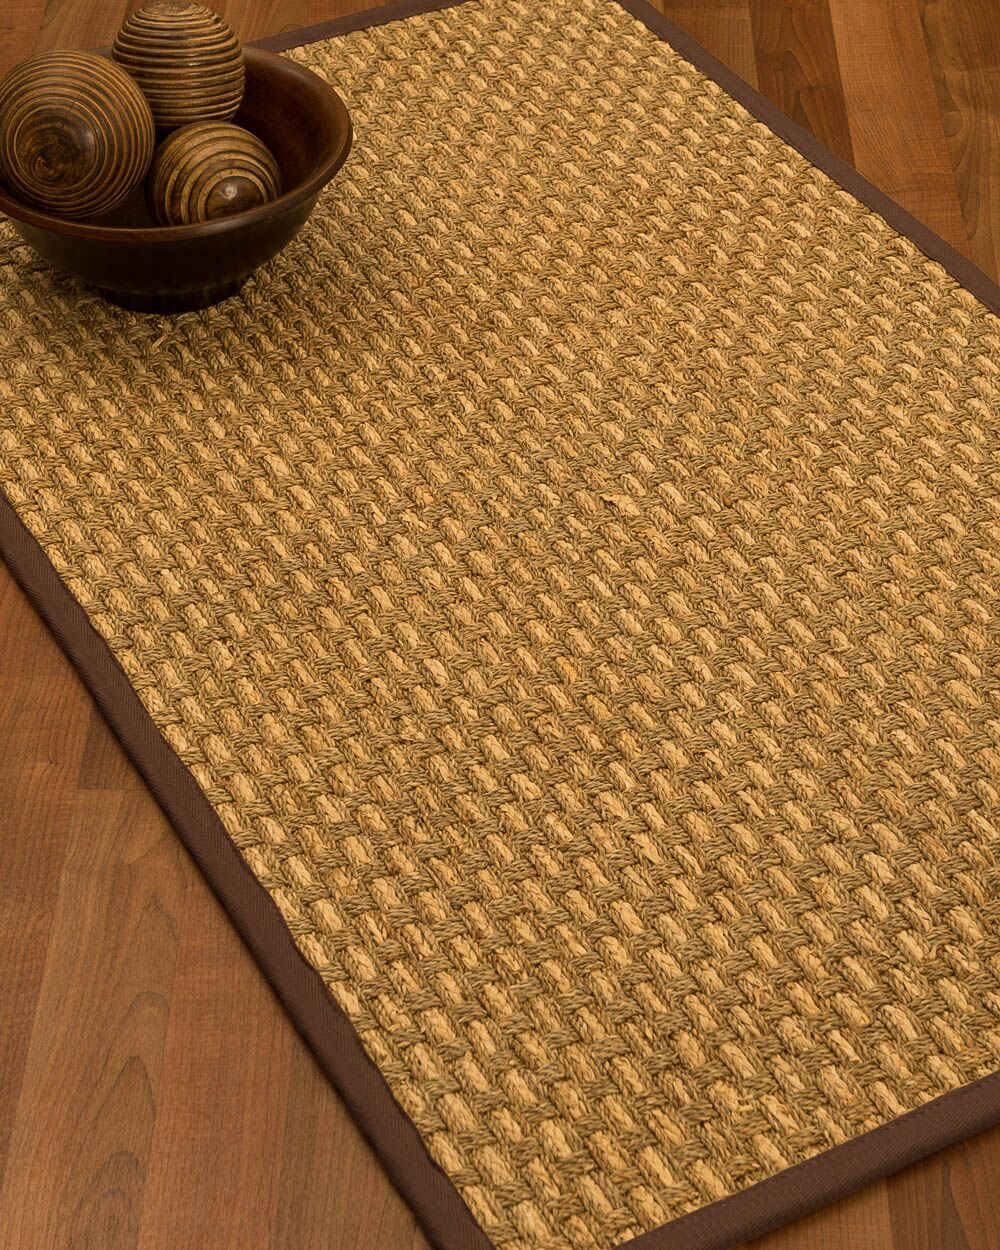 Castiglia Border Hand-Woven Beige/Brown Area Rug Rug Size: Rectangle 12' x 15', Rug Pad Included: Yes